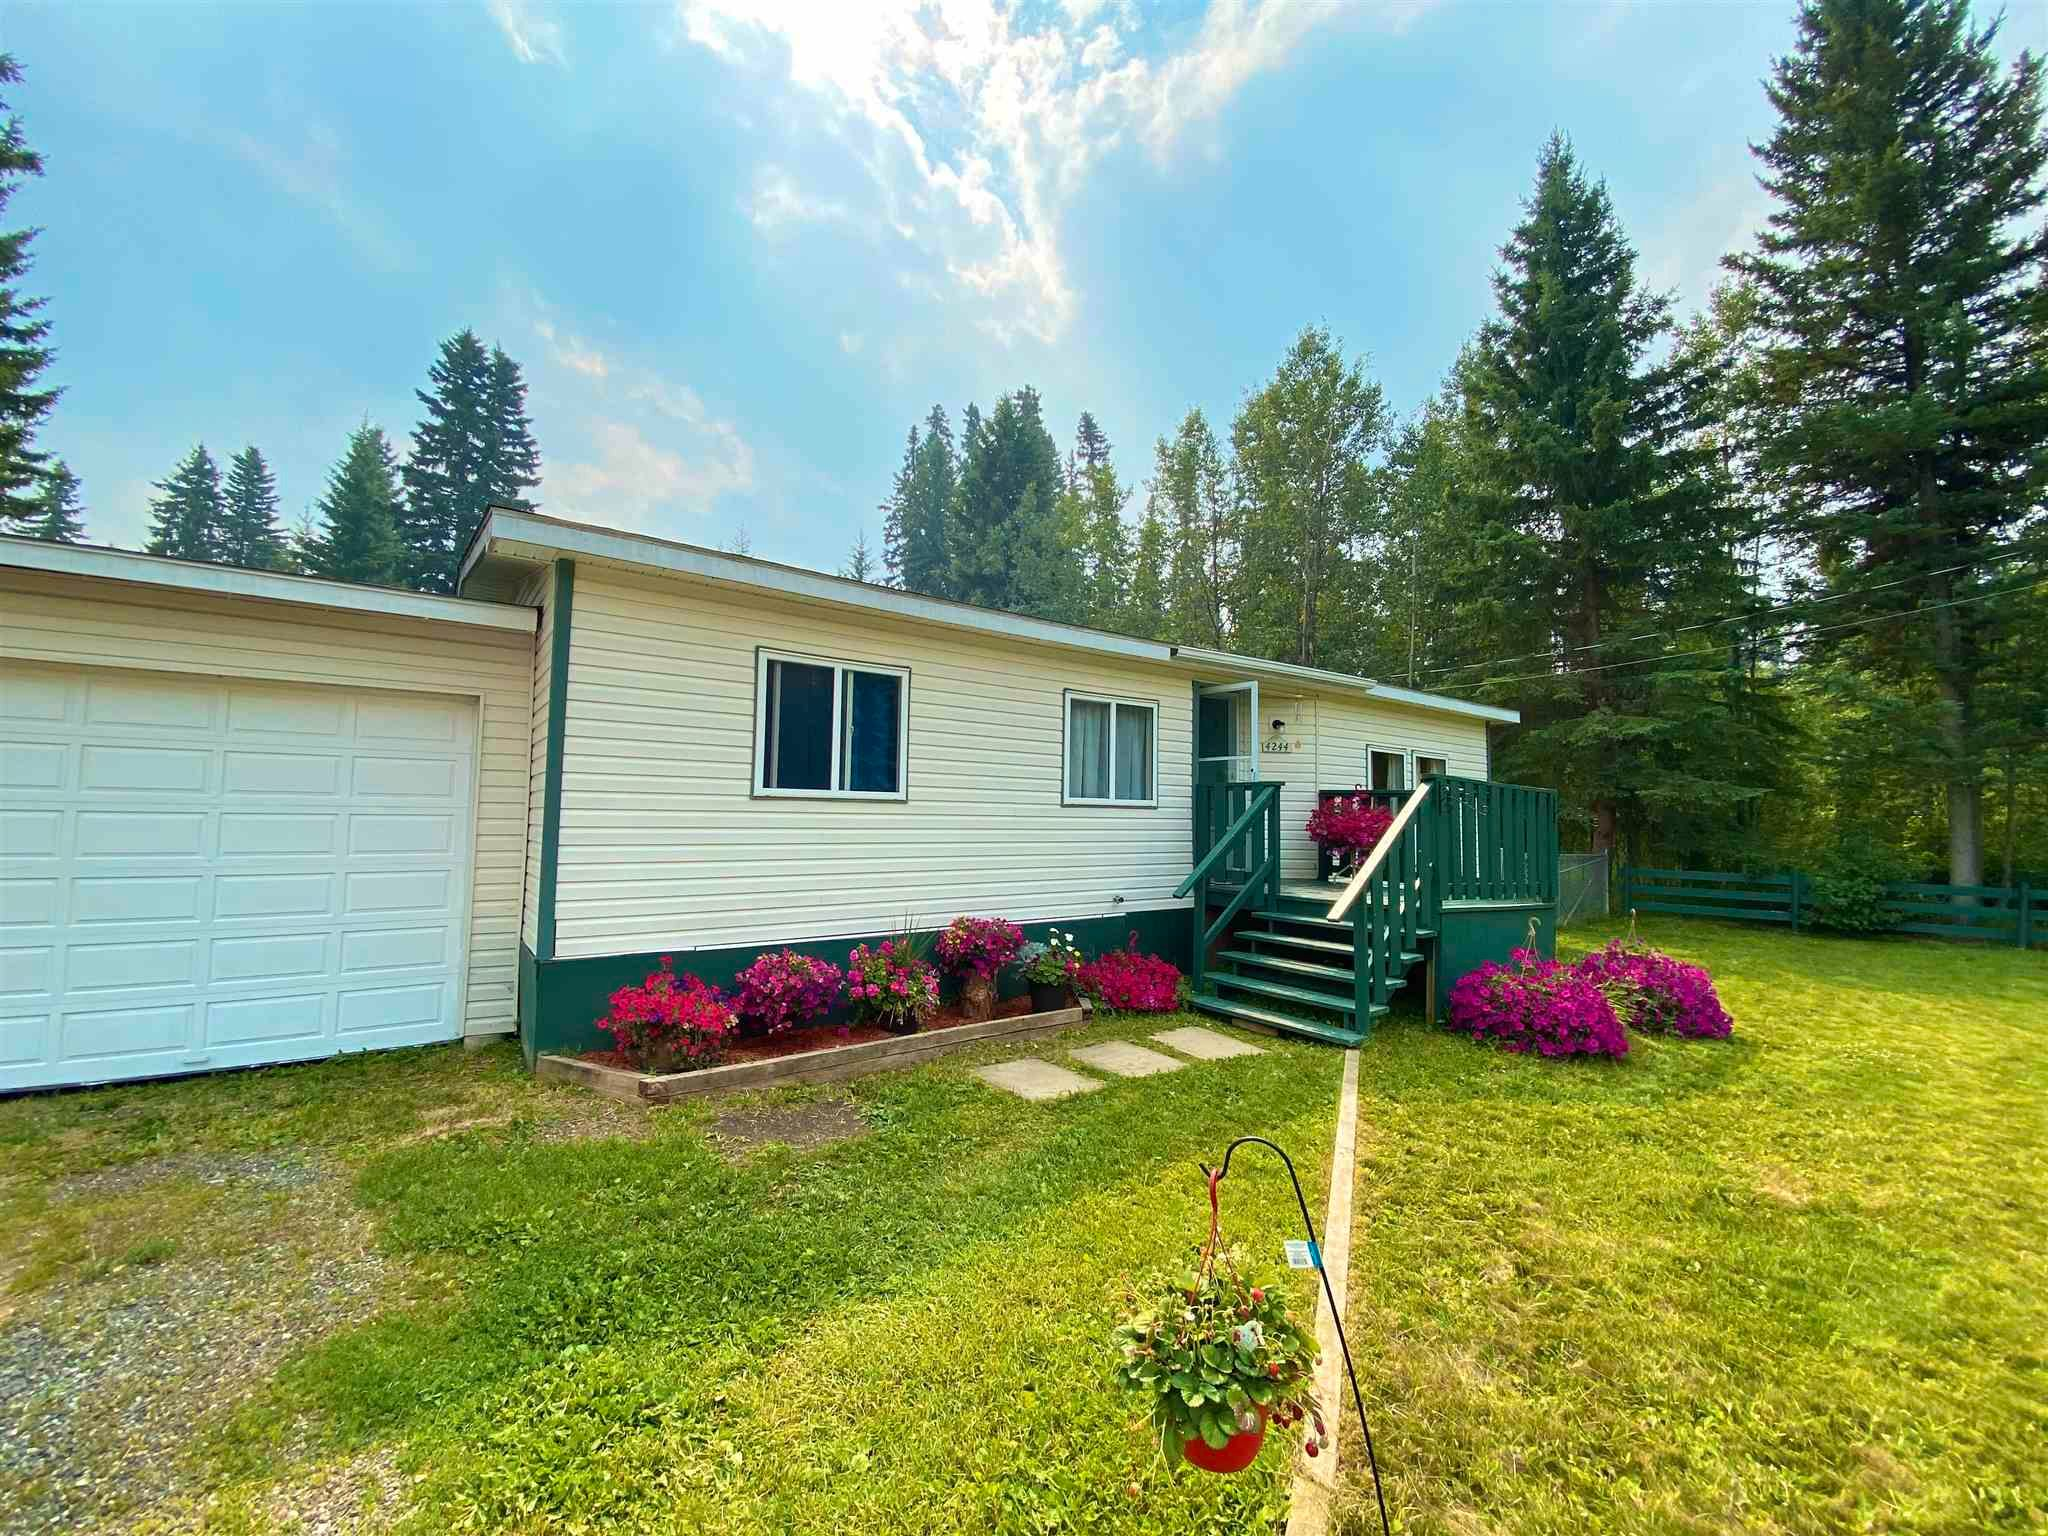 Main Photo: 4244 FORD Place in Williams Lake: Williams Lake - Rural North Manufactured Home for sale (Williams Lake (Zone 27))  : MLS®# R2603276